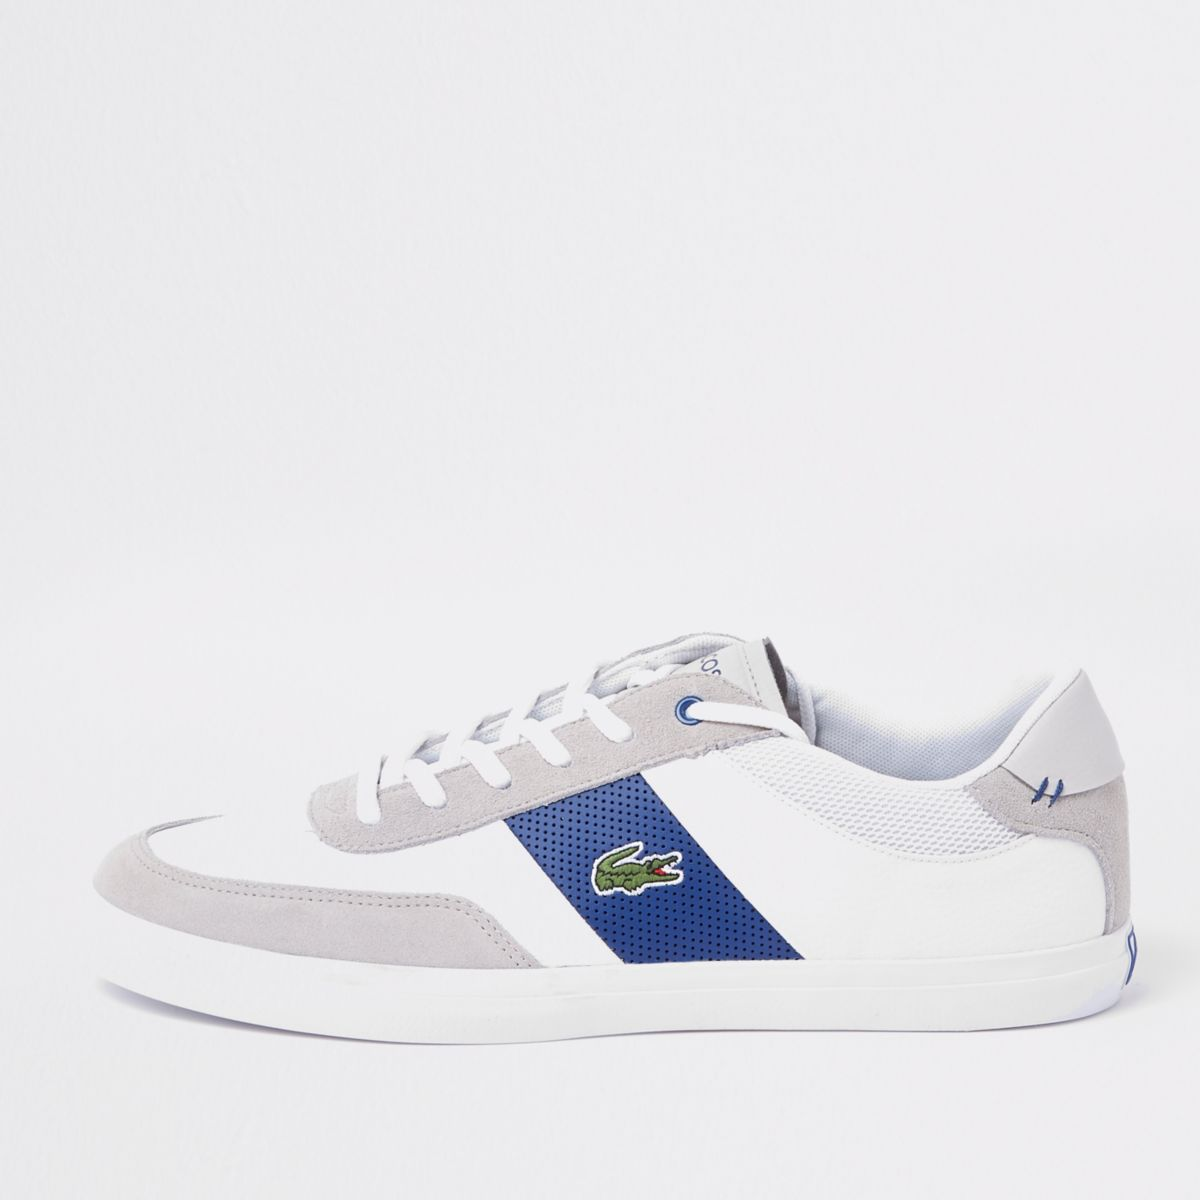 Lacoste grey court lace-up trainers